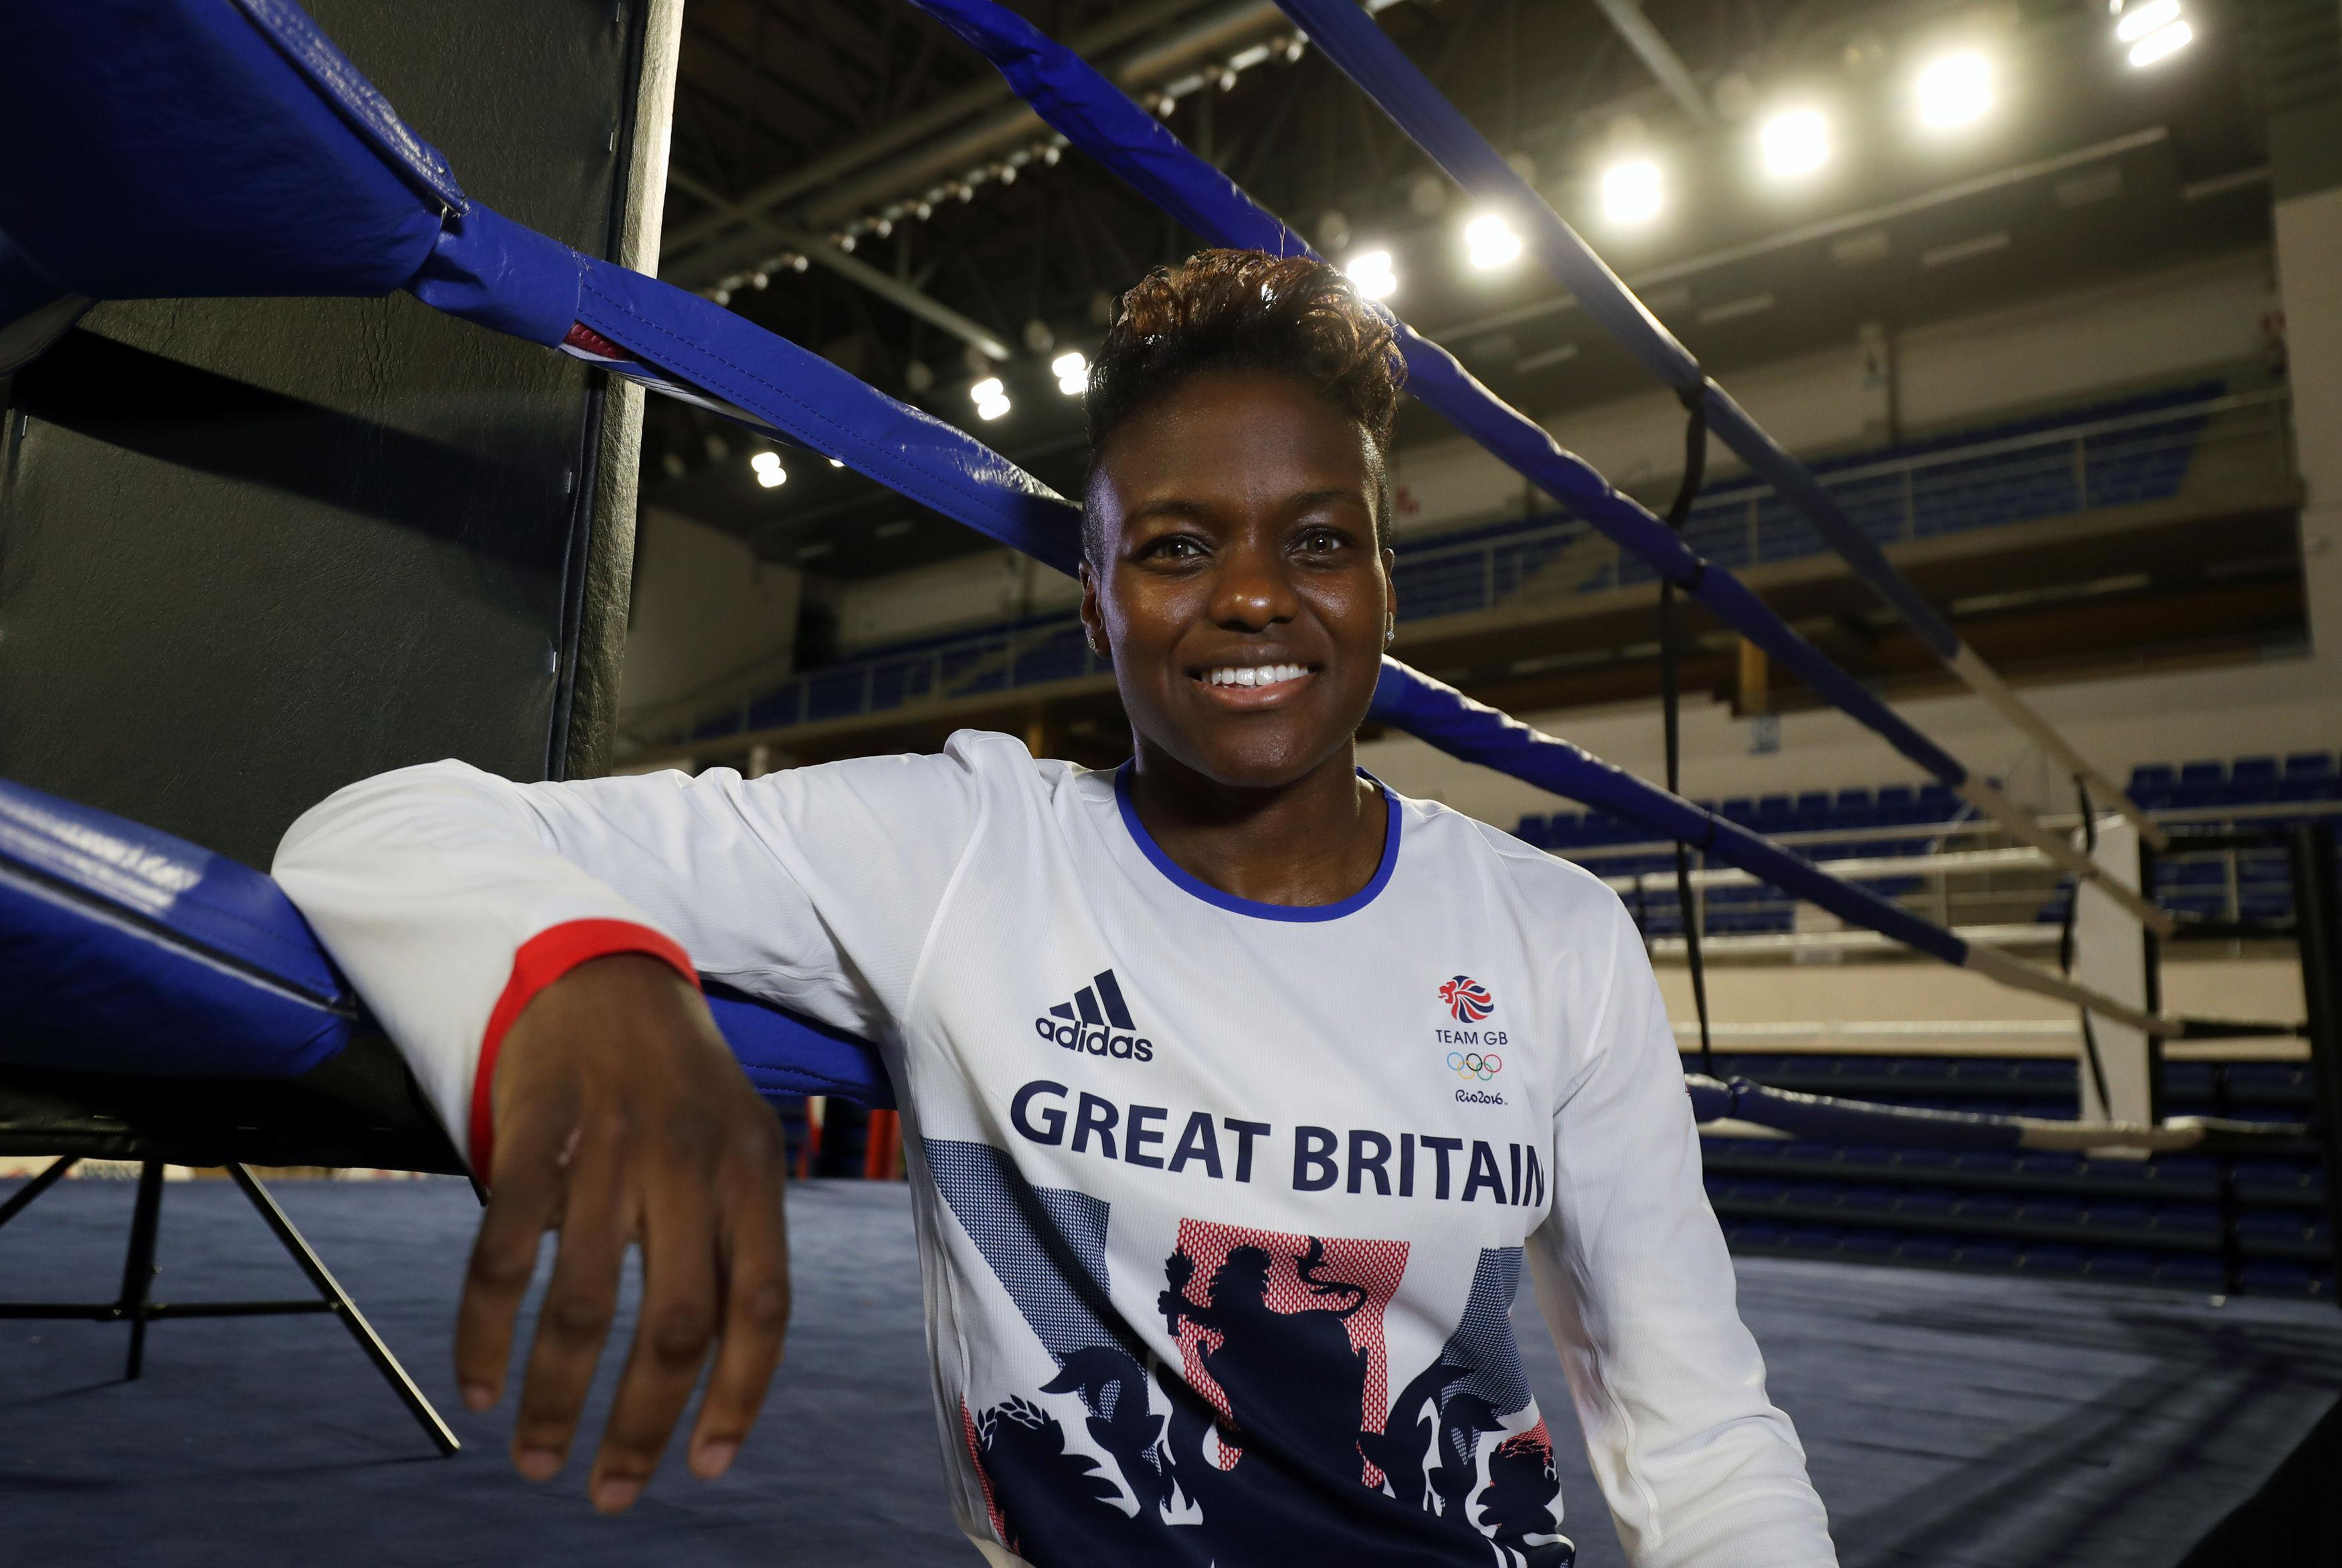 Nicola Adams turned pro after a phenomenal amateur boxing career